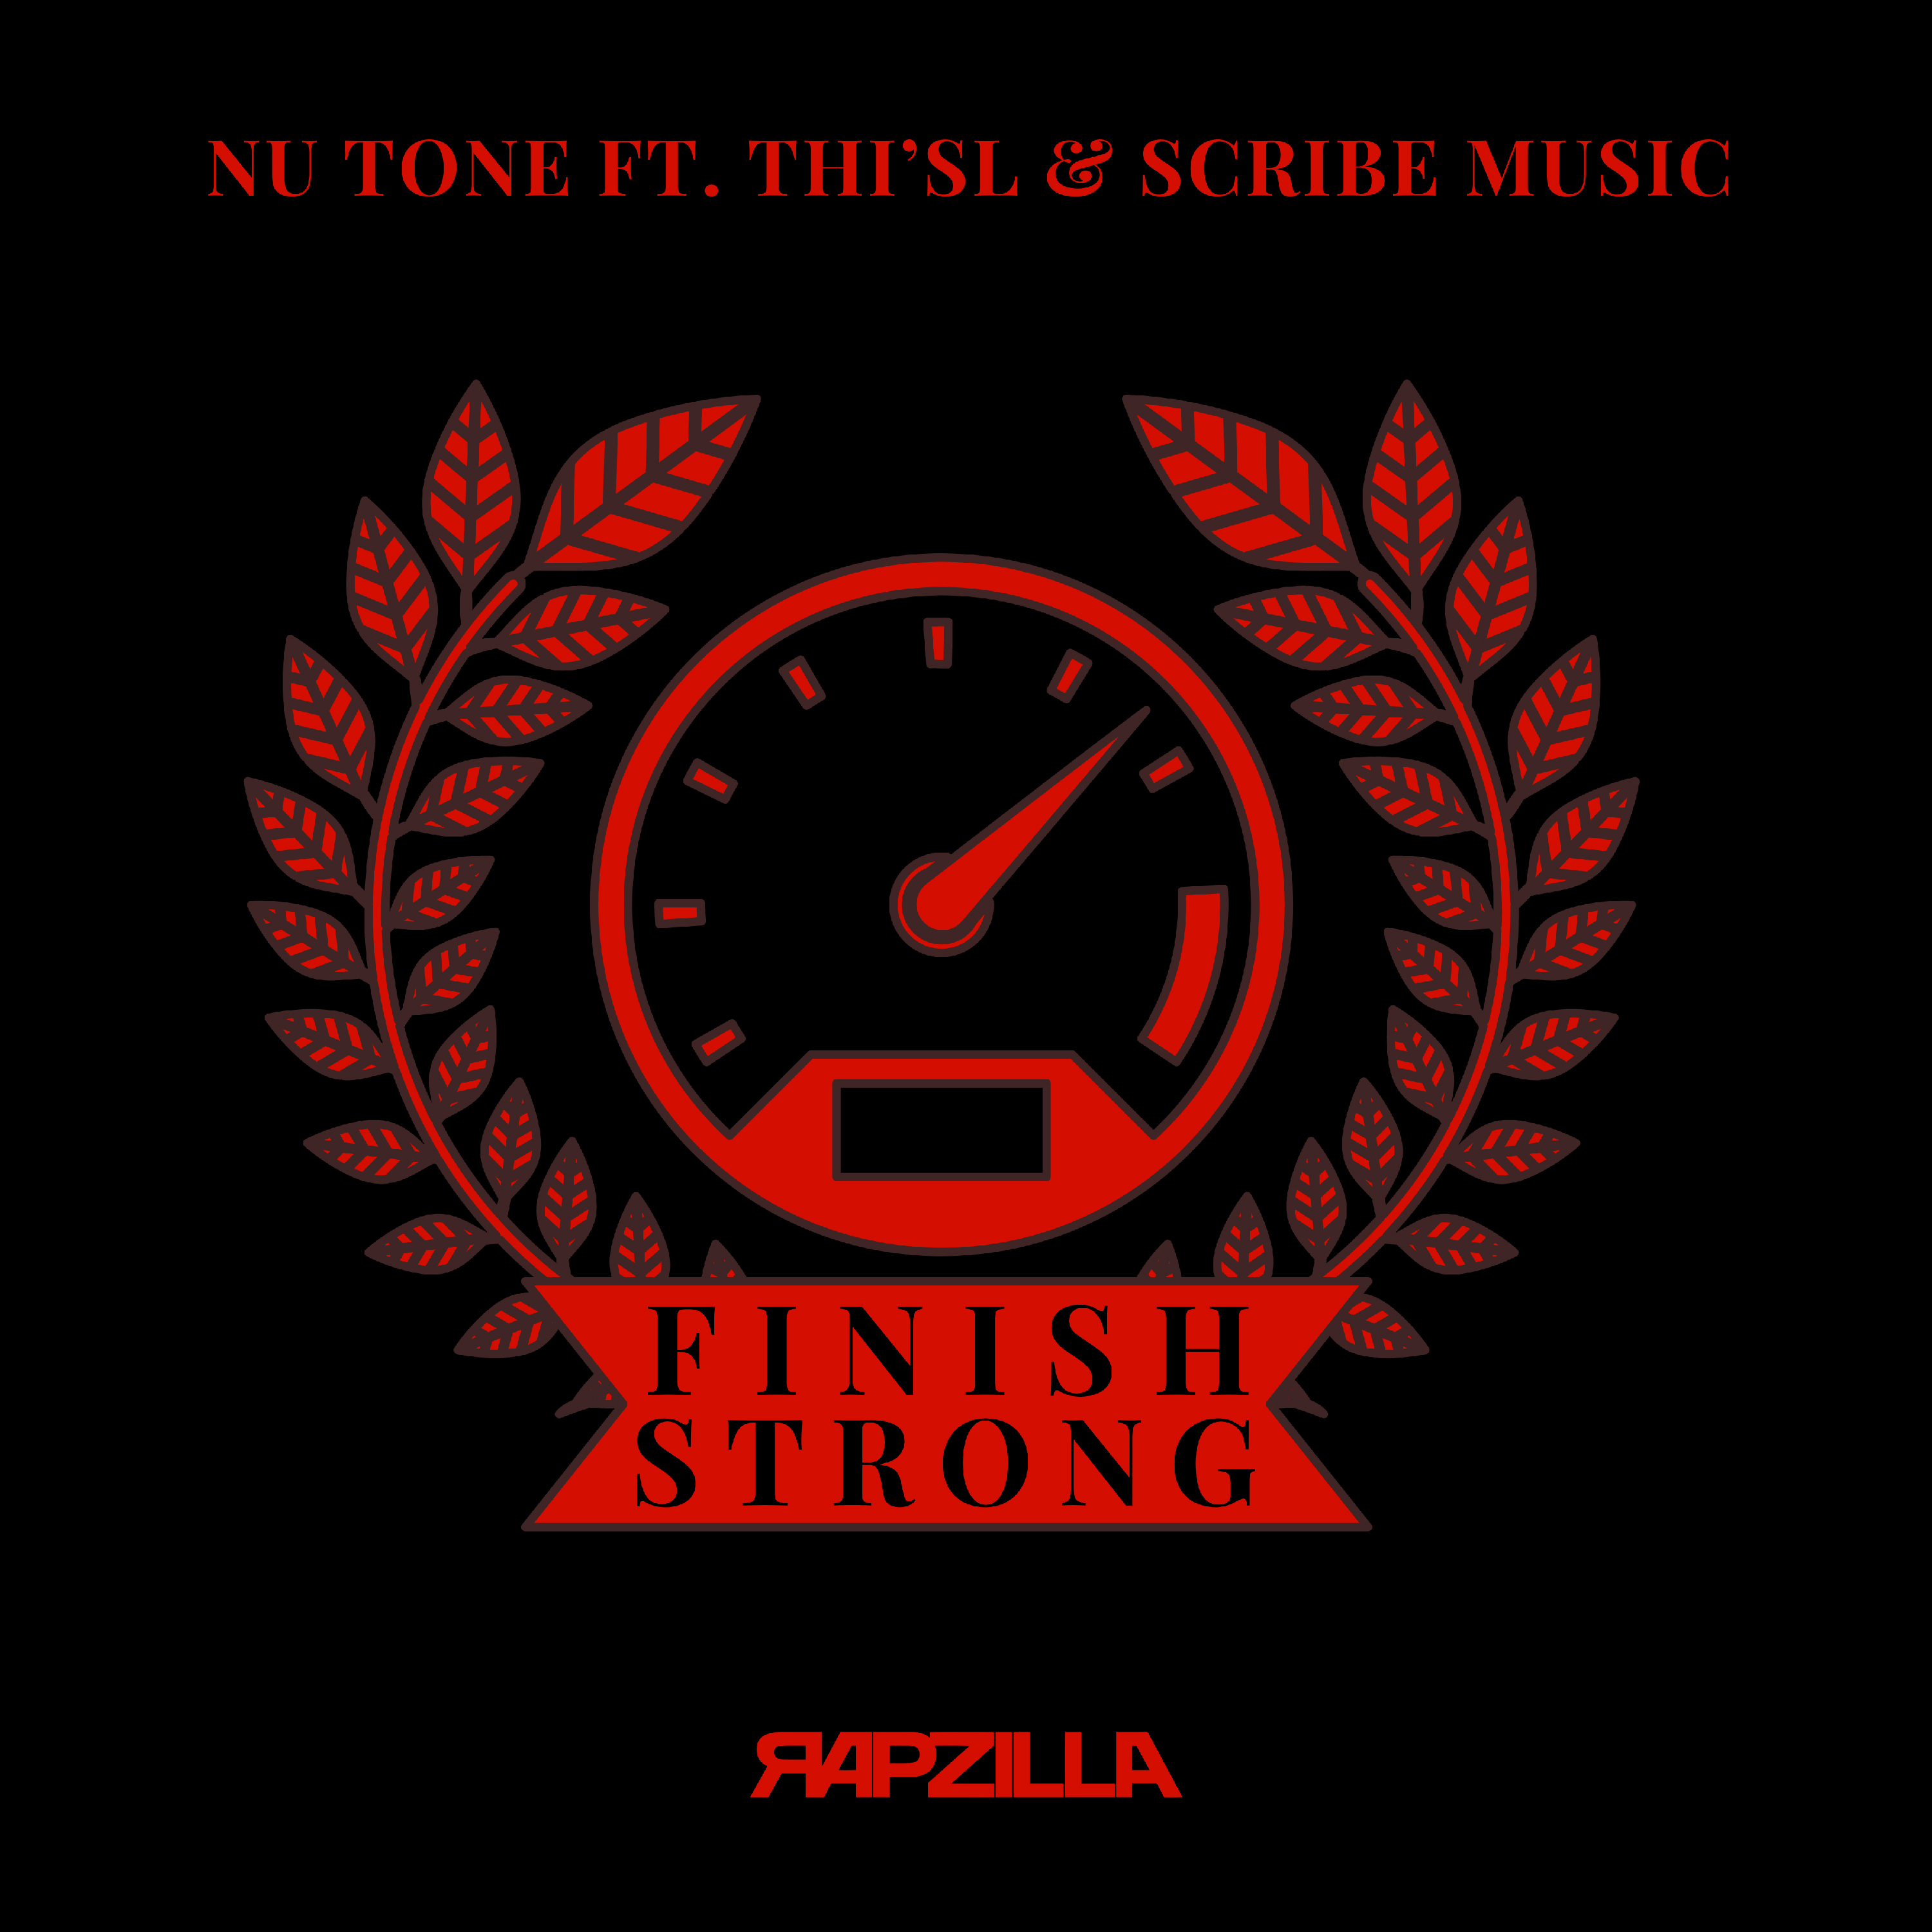 Finish Strong ft. Thi'sl & Scribe Music Image